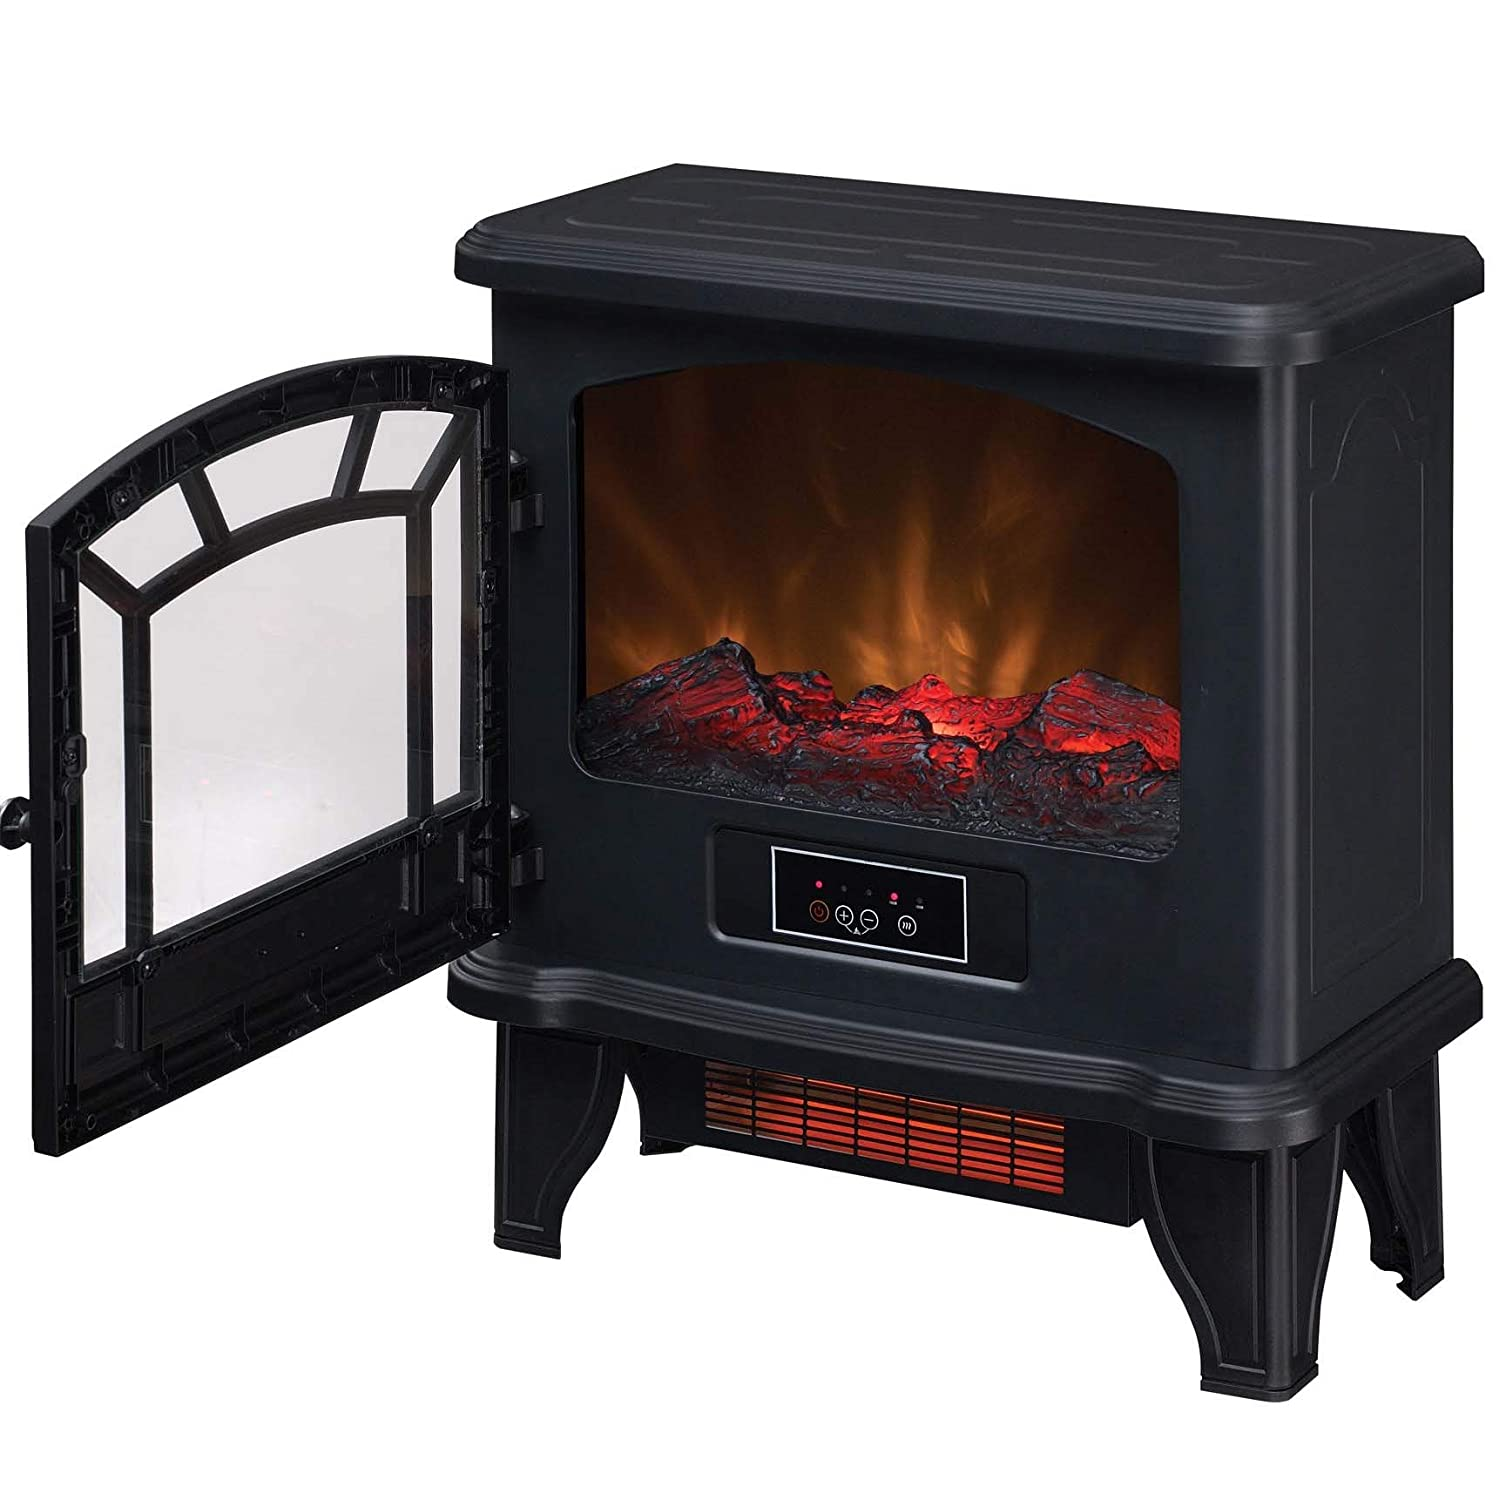 Wondrous Duraflame Electric Dfi 550 36 Infrared Quartz Fireplace Stove Heater Black Interior Design Ideas Gentotryabchikinfo